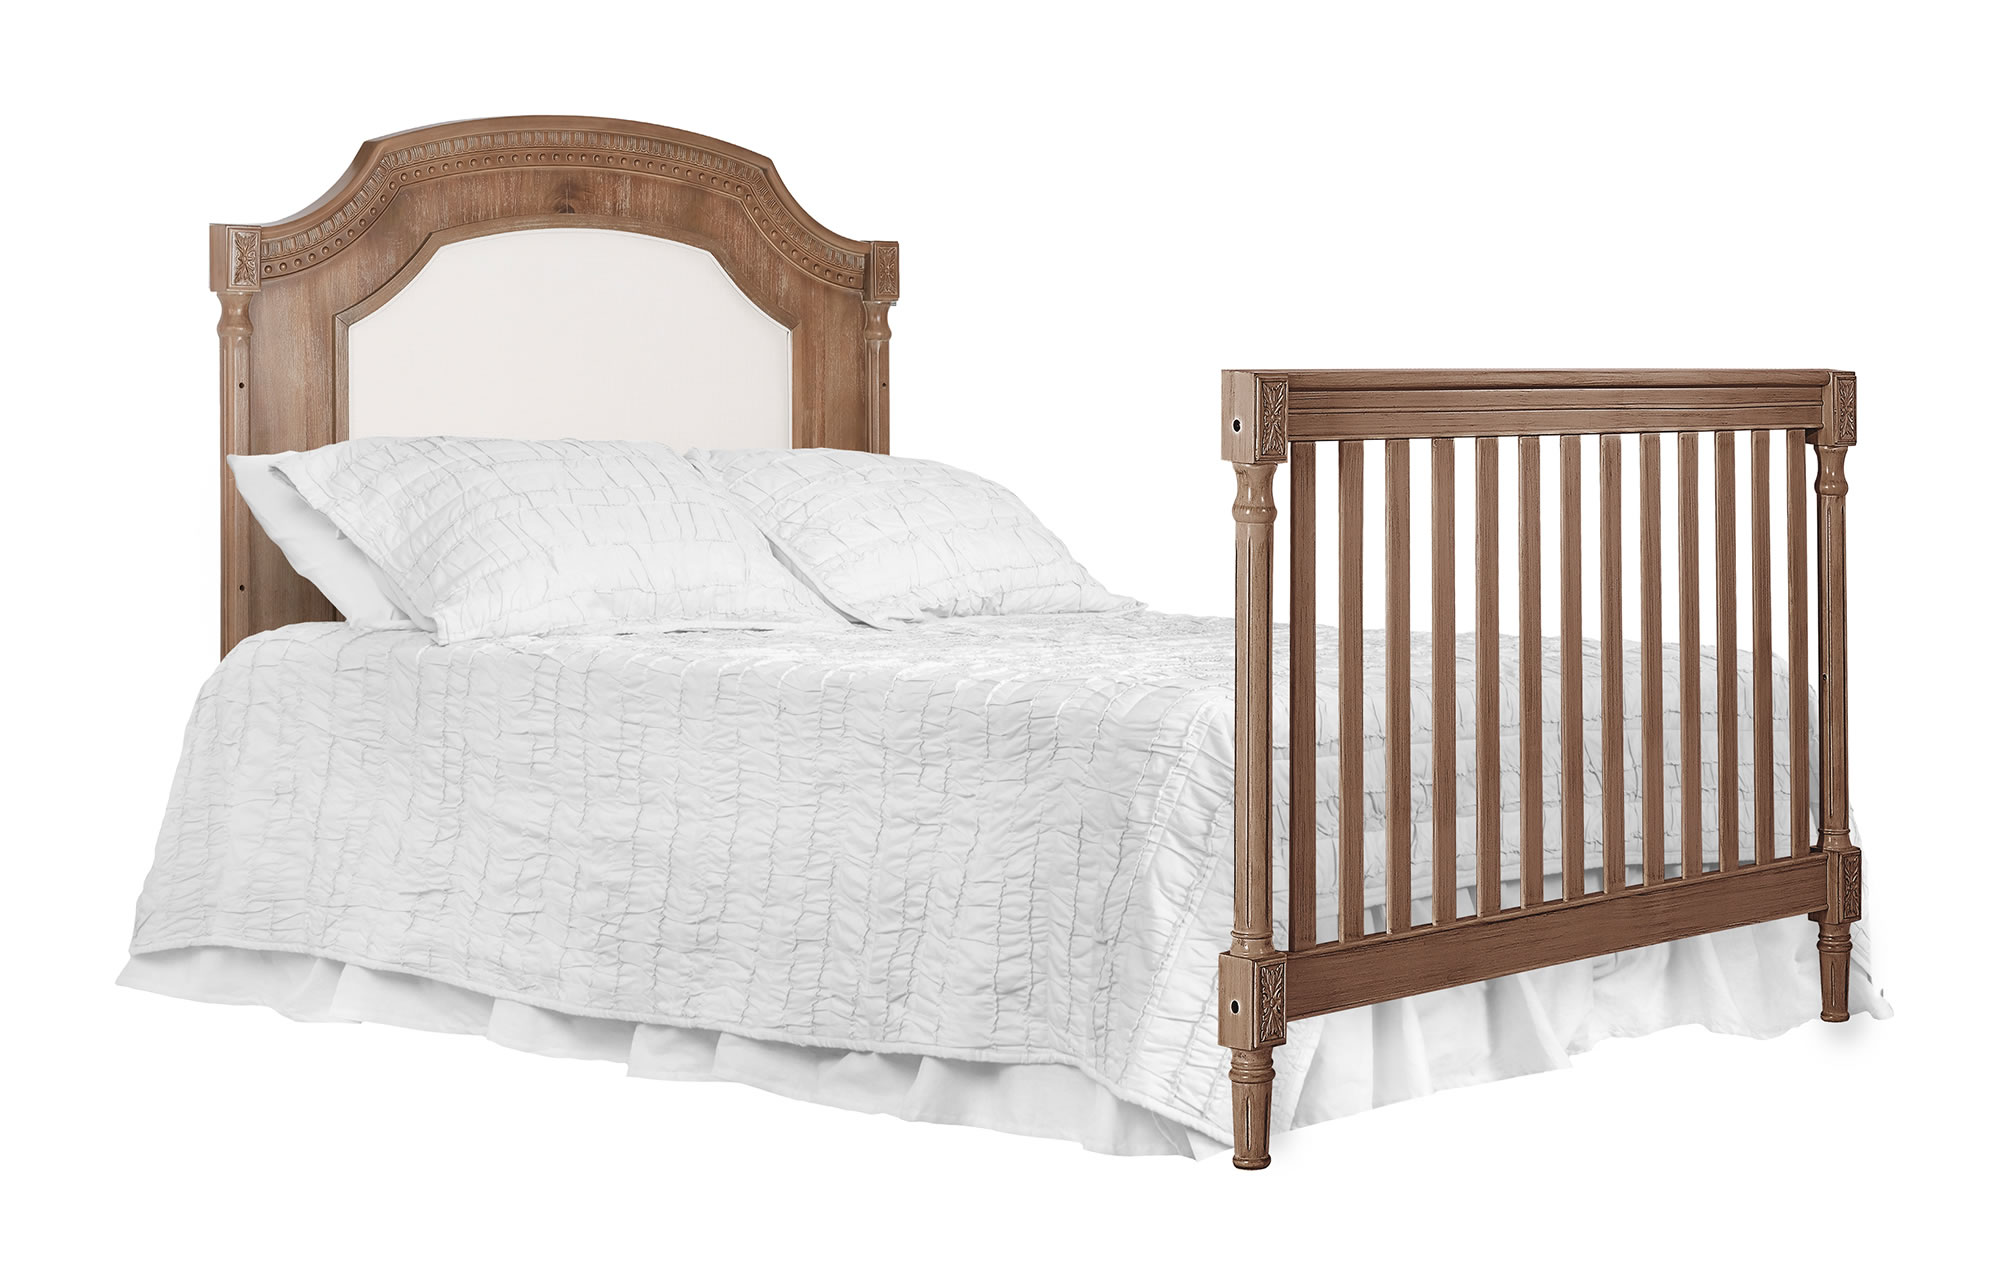 Evolur Julienne Full Bed with Head foot board - Toffee